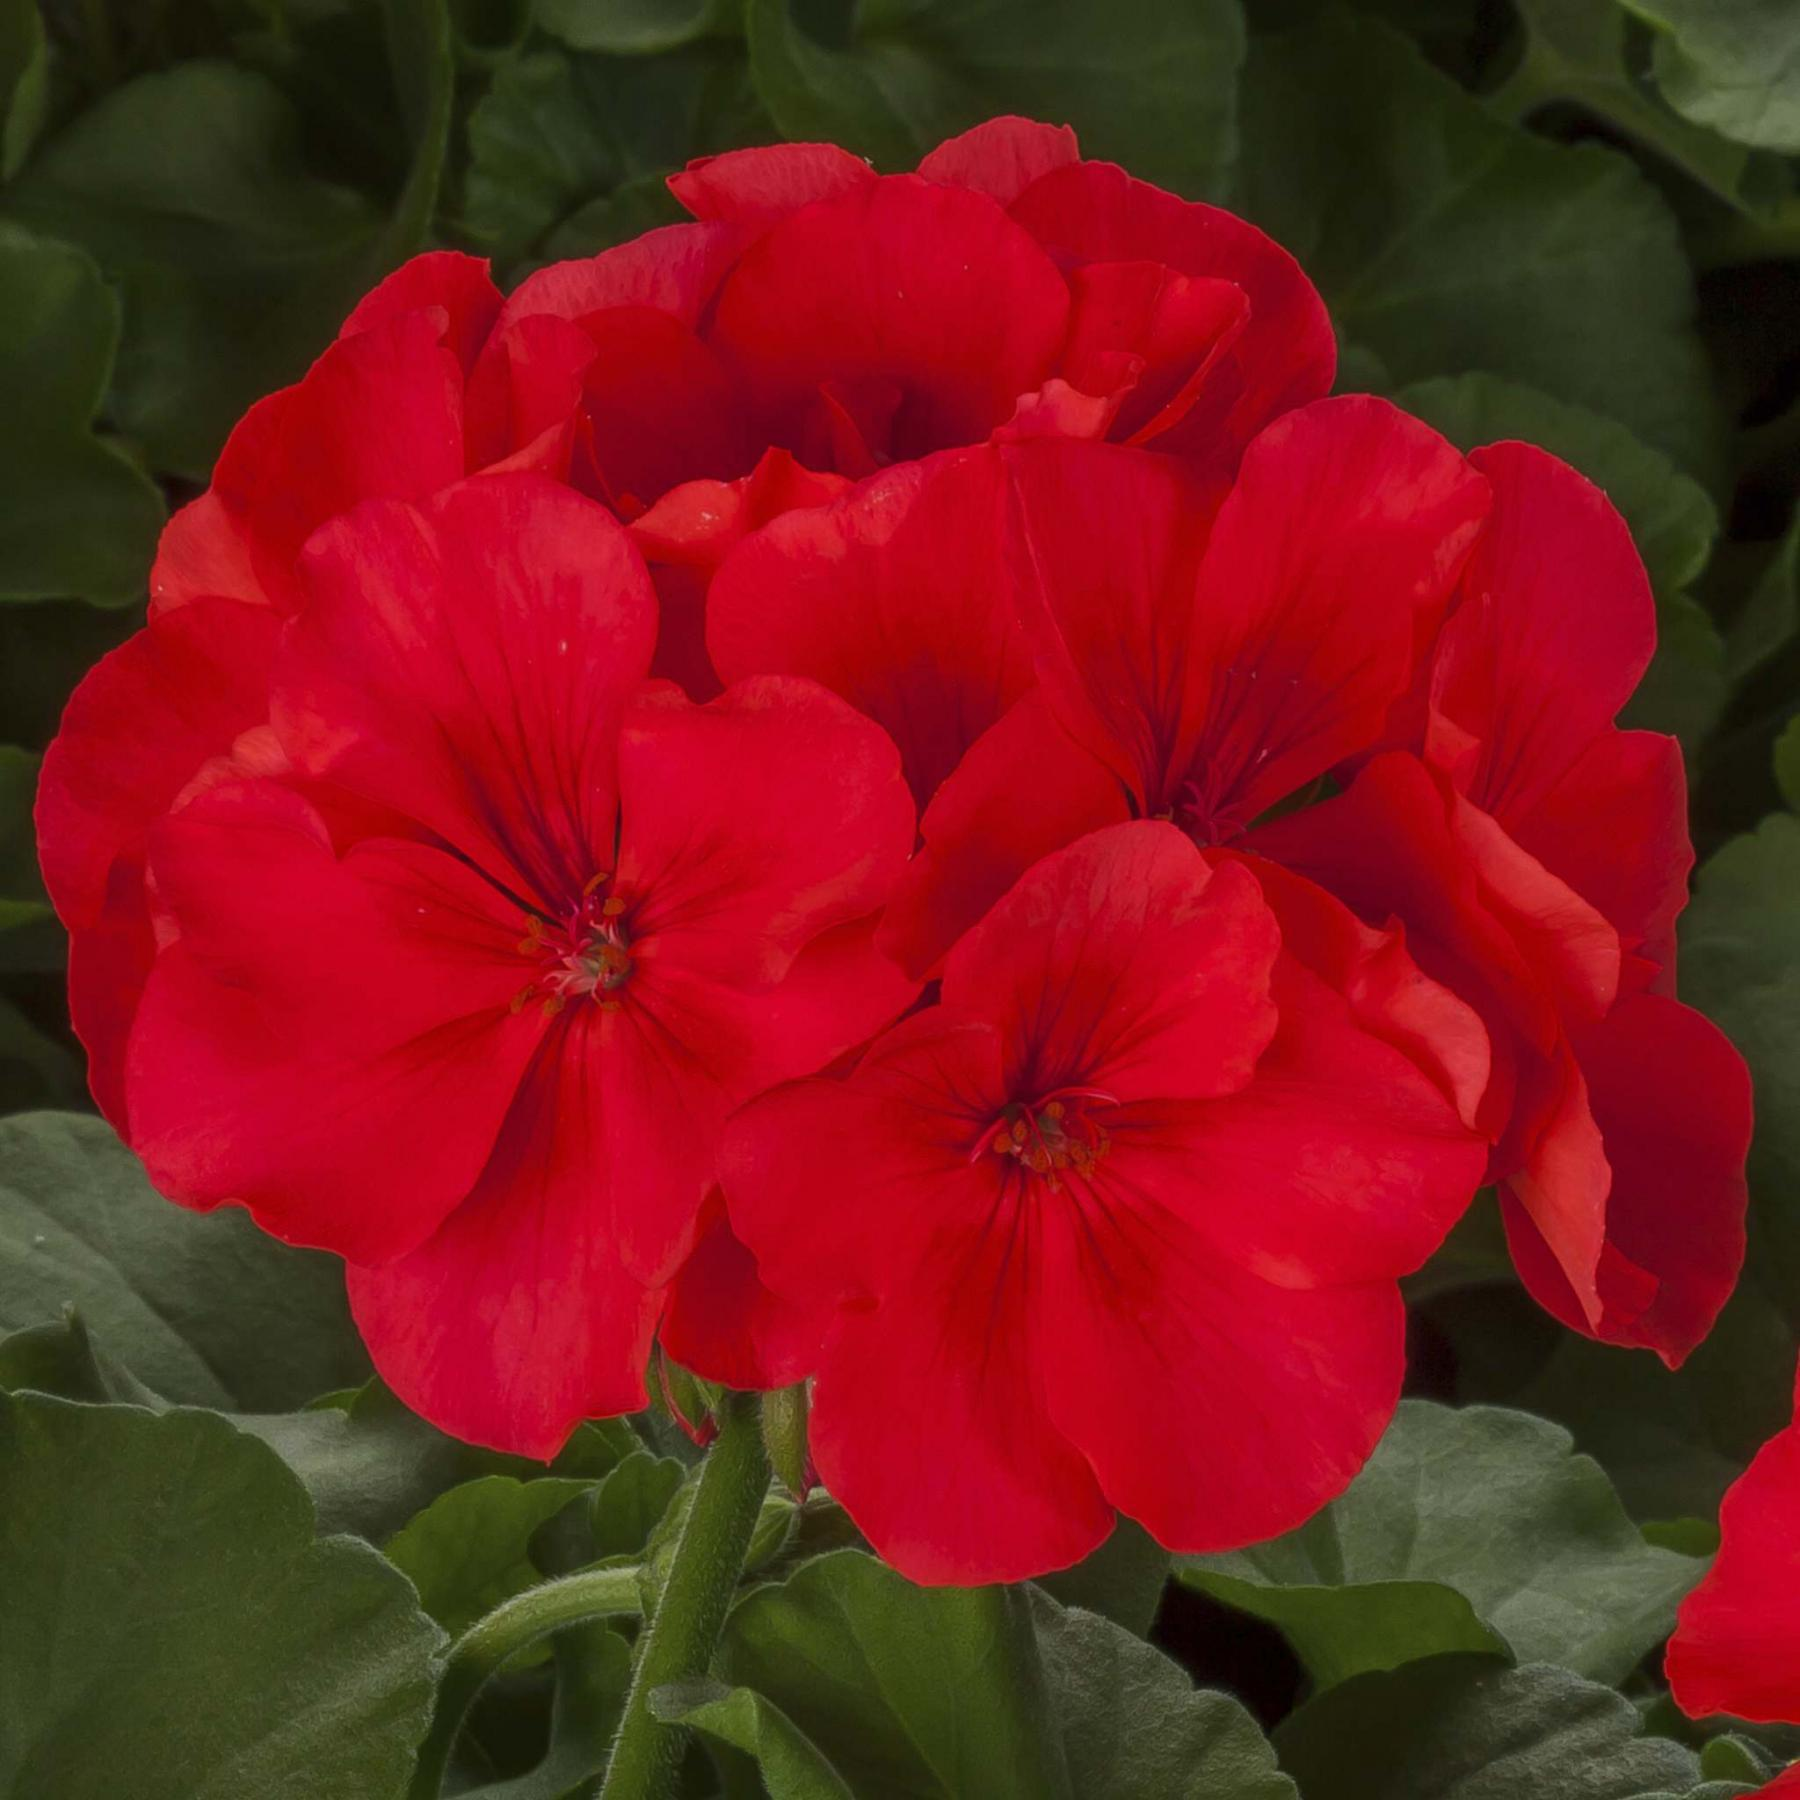 <p>The Calliope geranium is named for the Greek goddess of eloquence and poetry.</p>